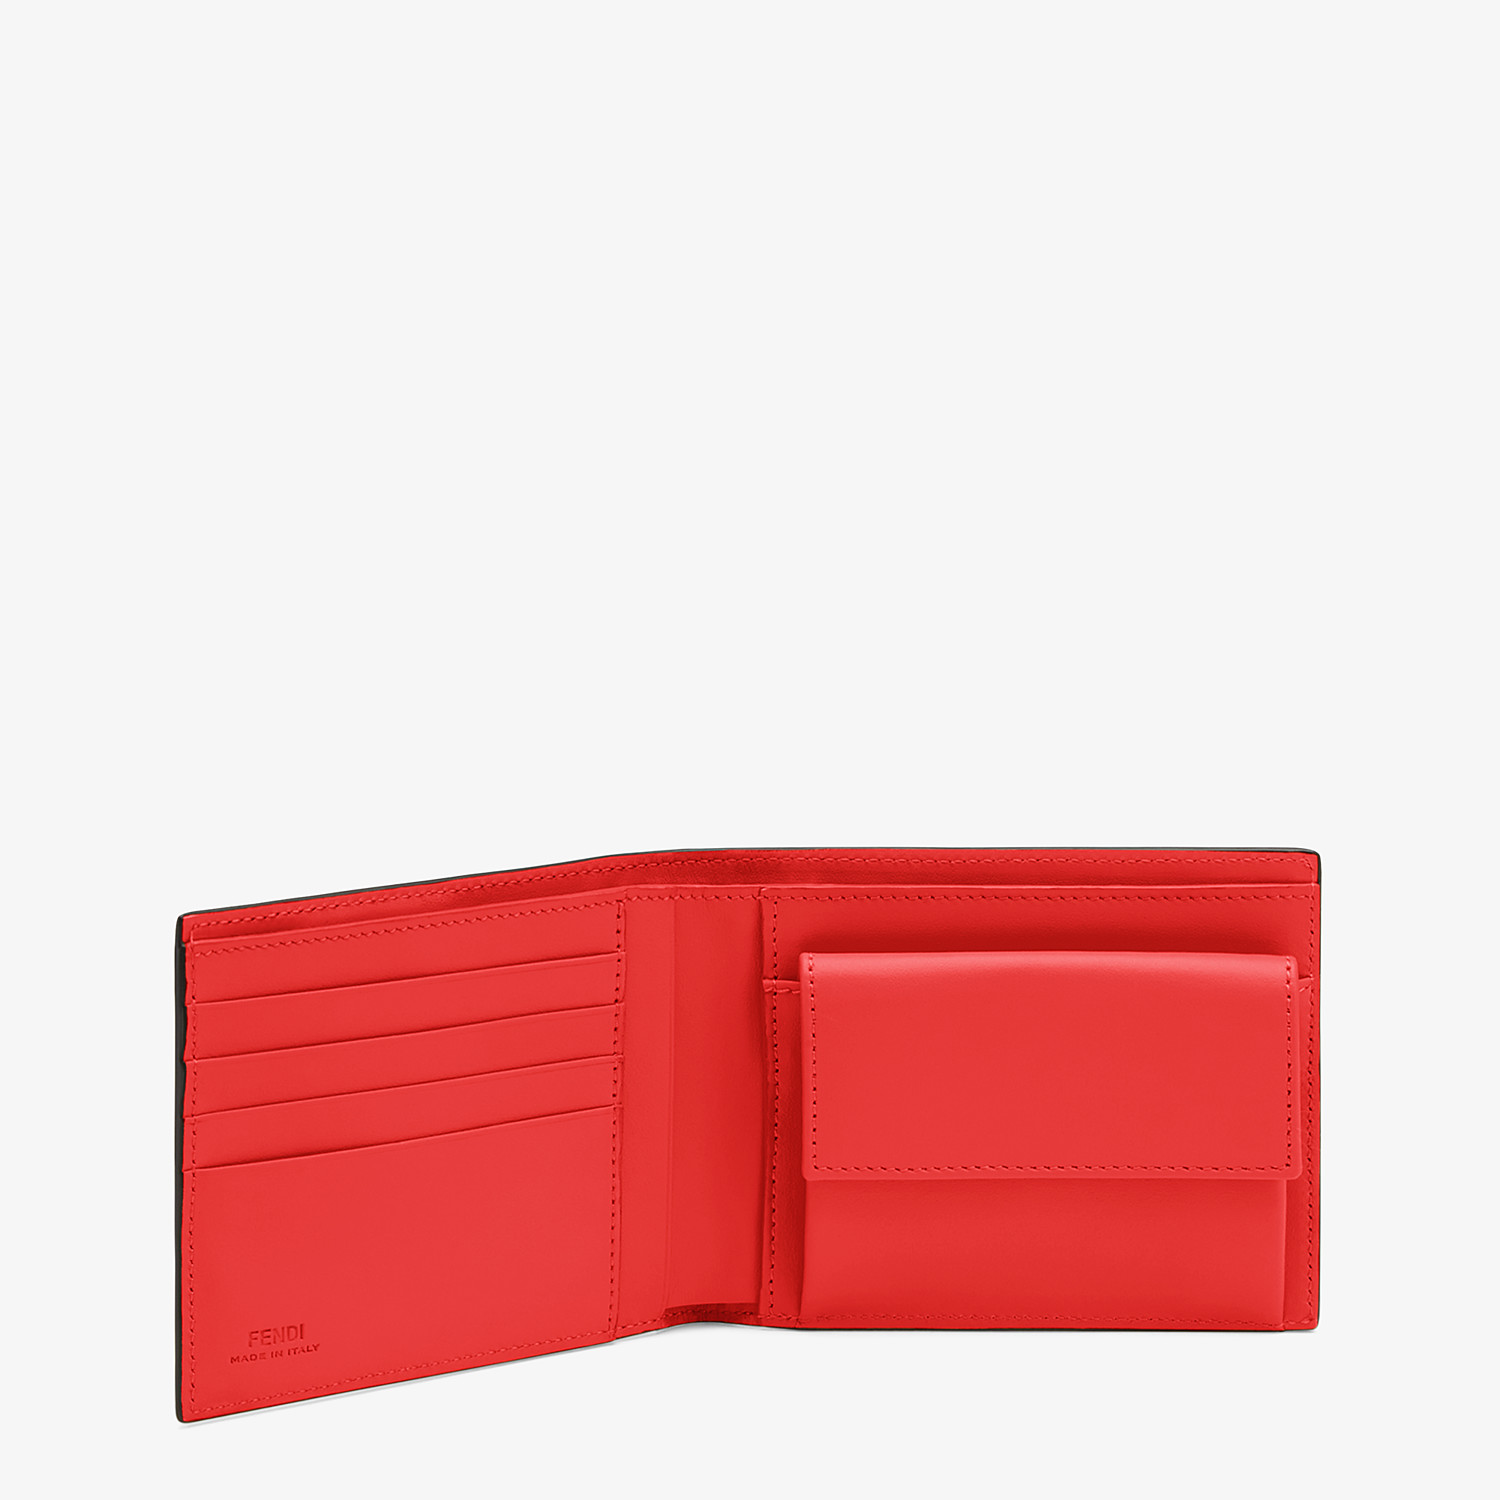 FENDI WALLET - Multicolour leather wallet - view 3 detail